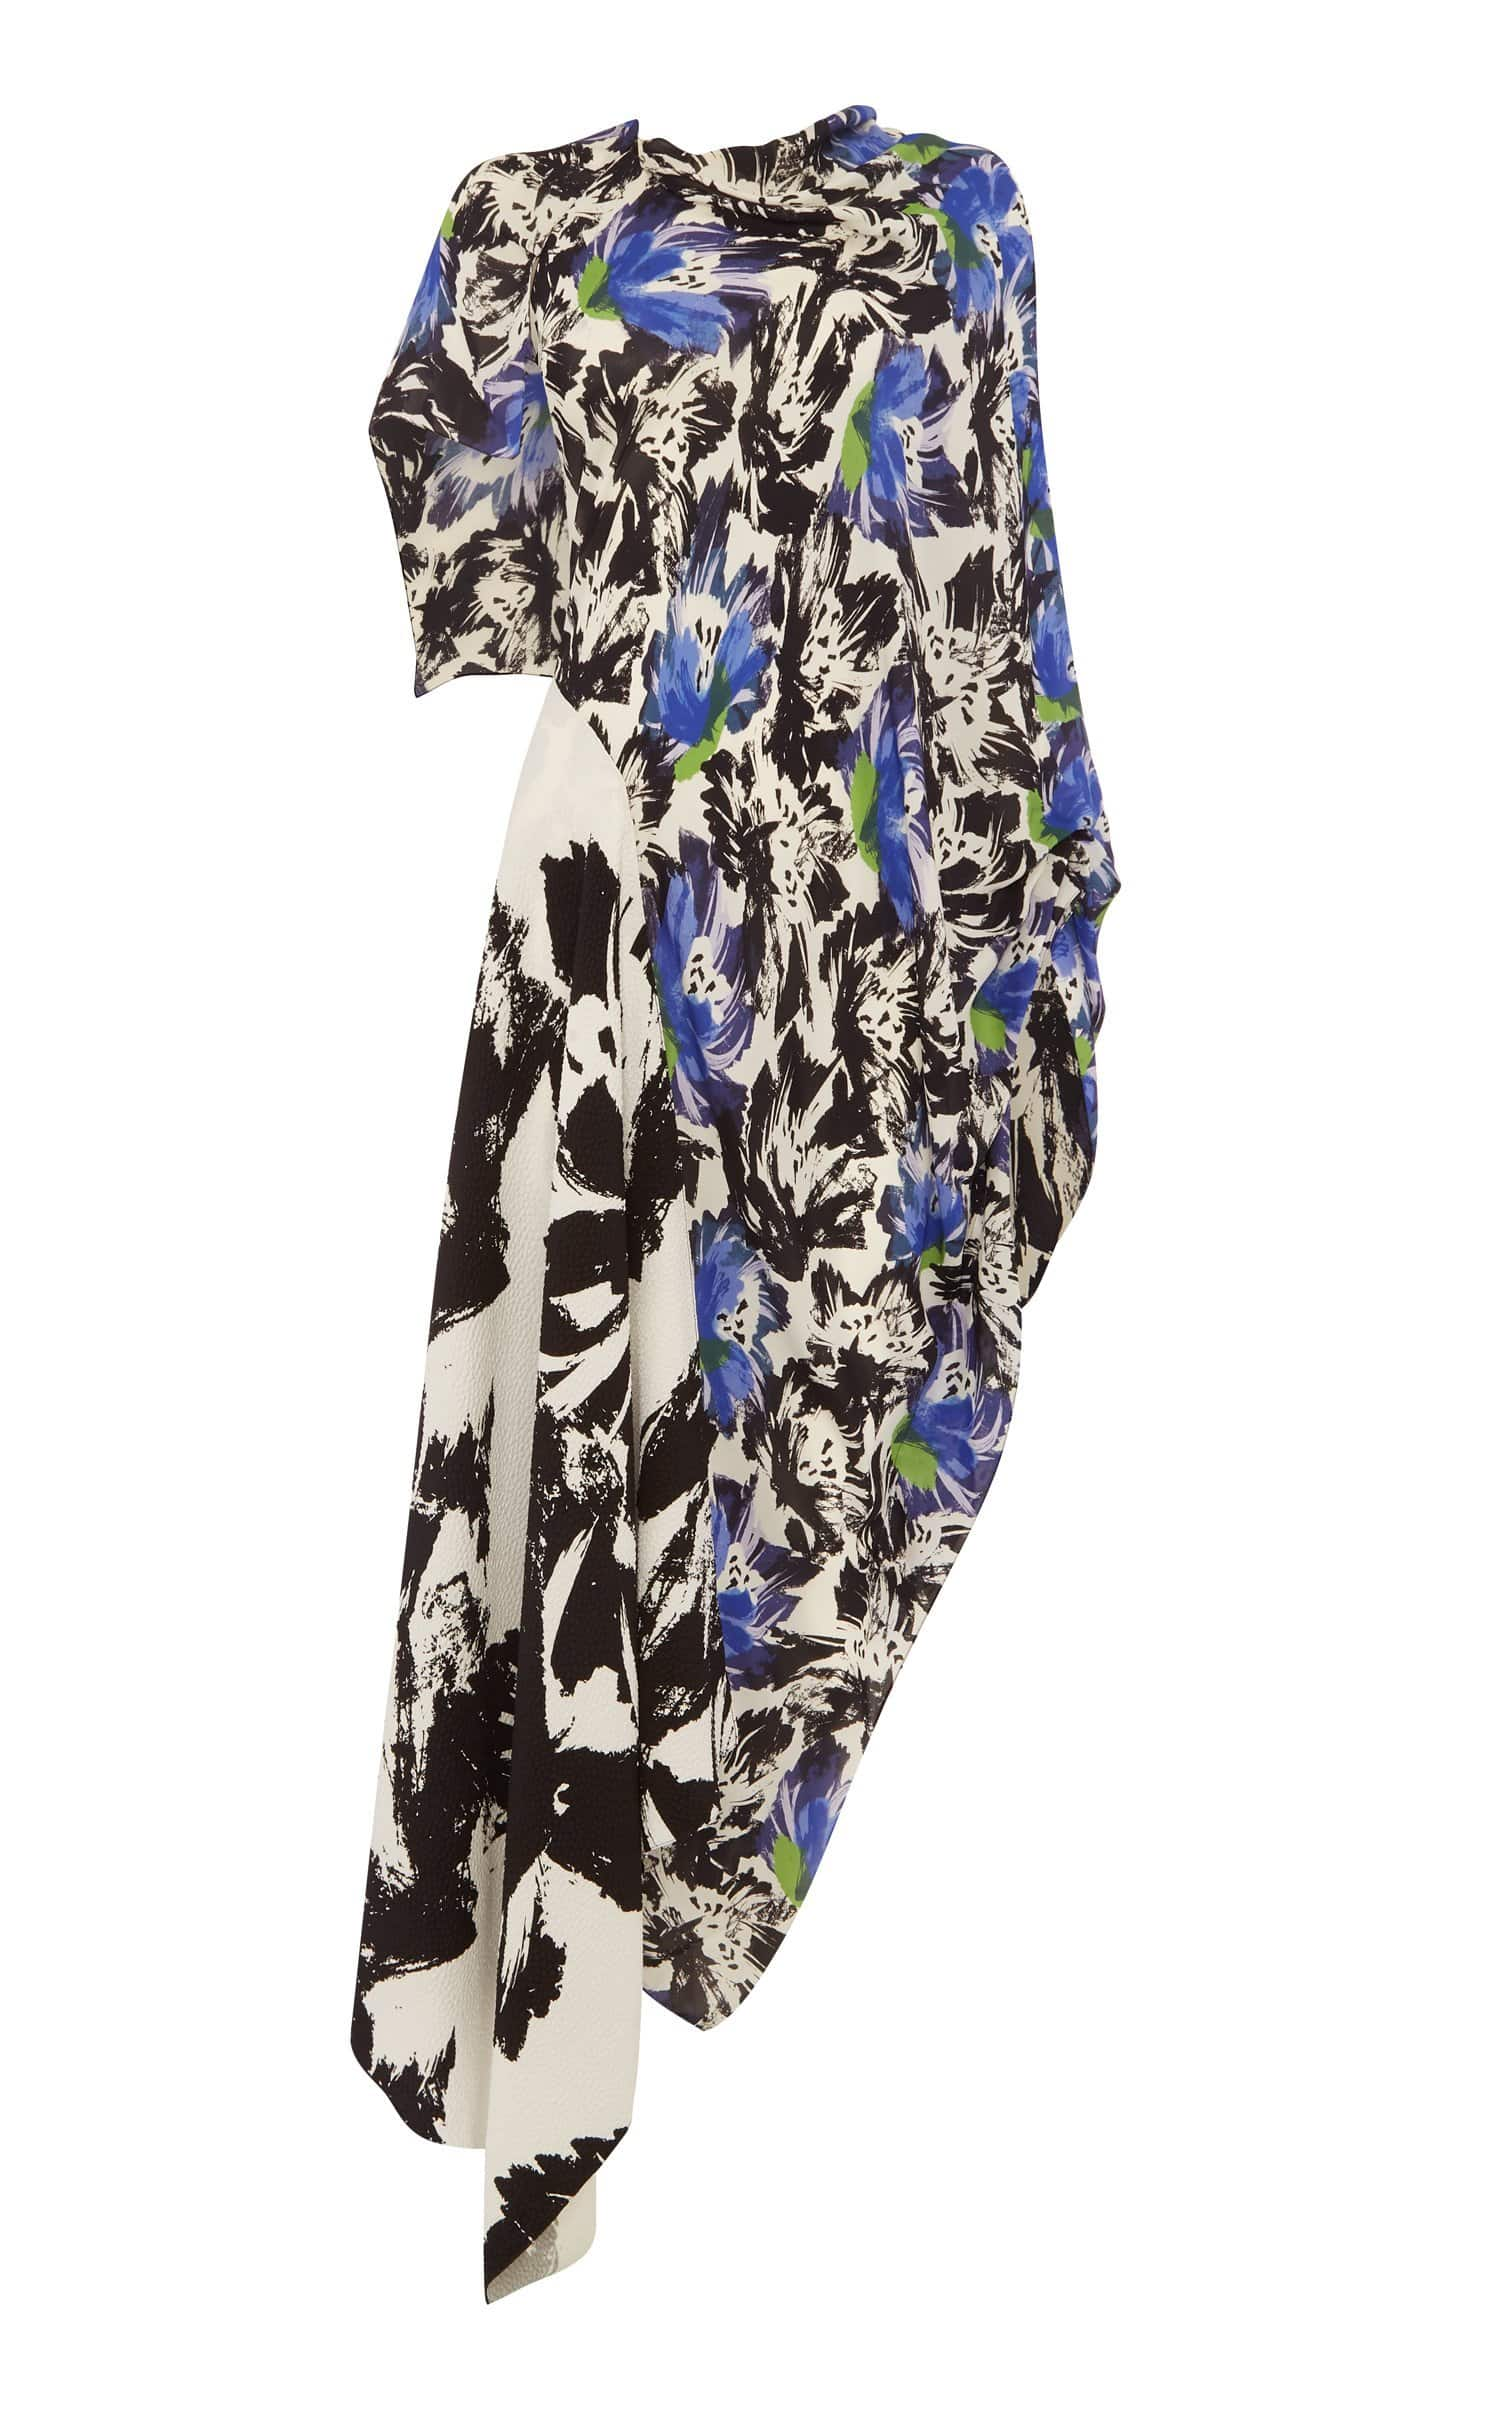 Calhern Dress In Mixed/Mono Lrg Painterly from Roland Mouret